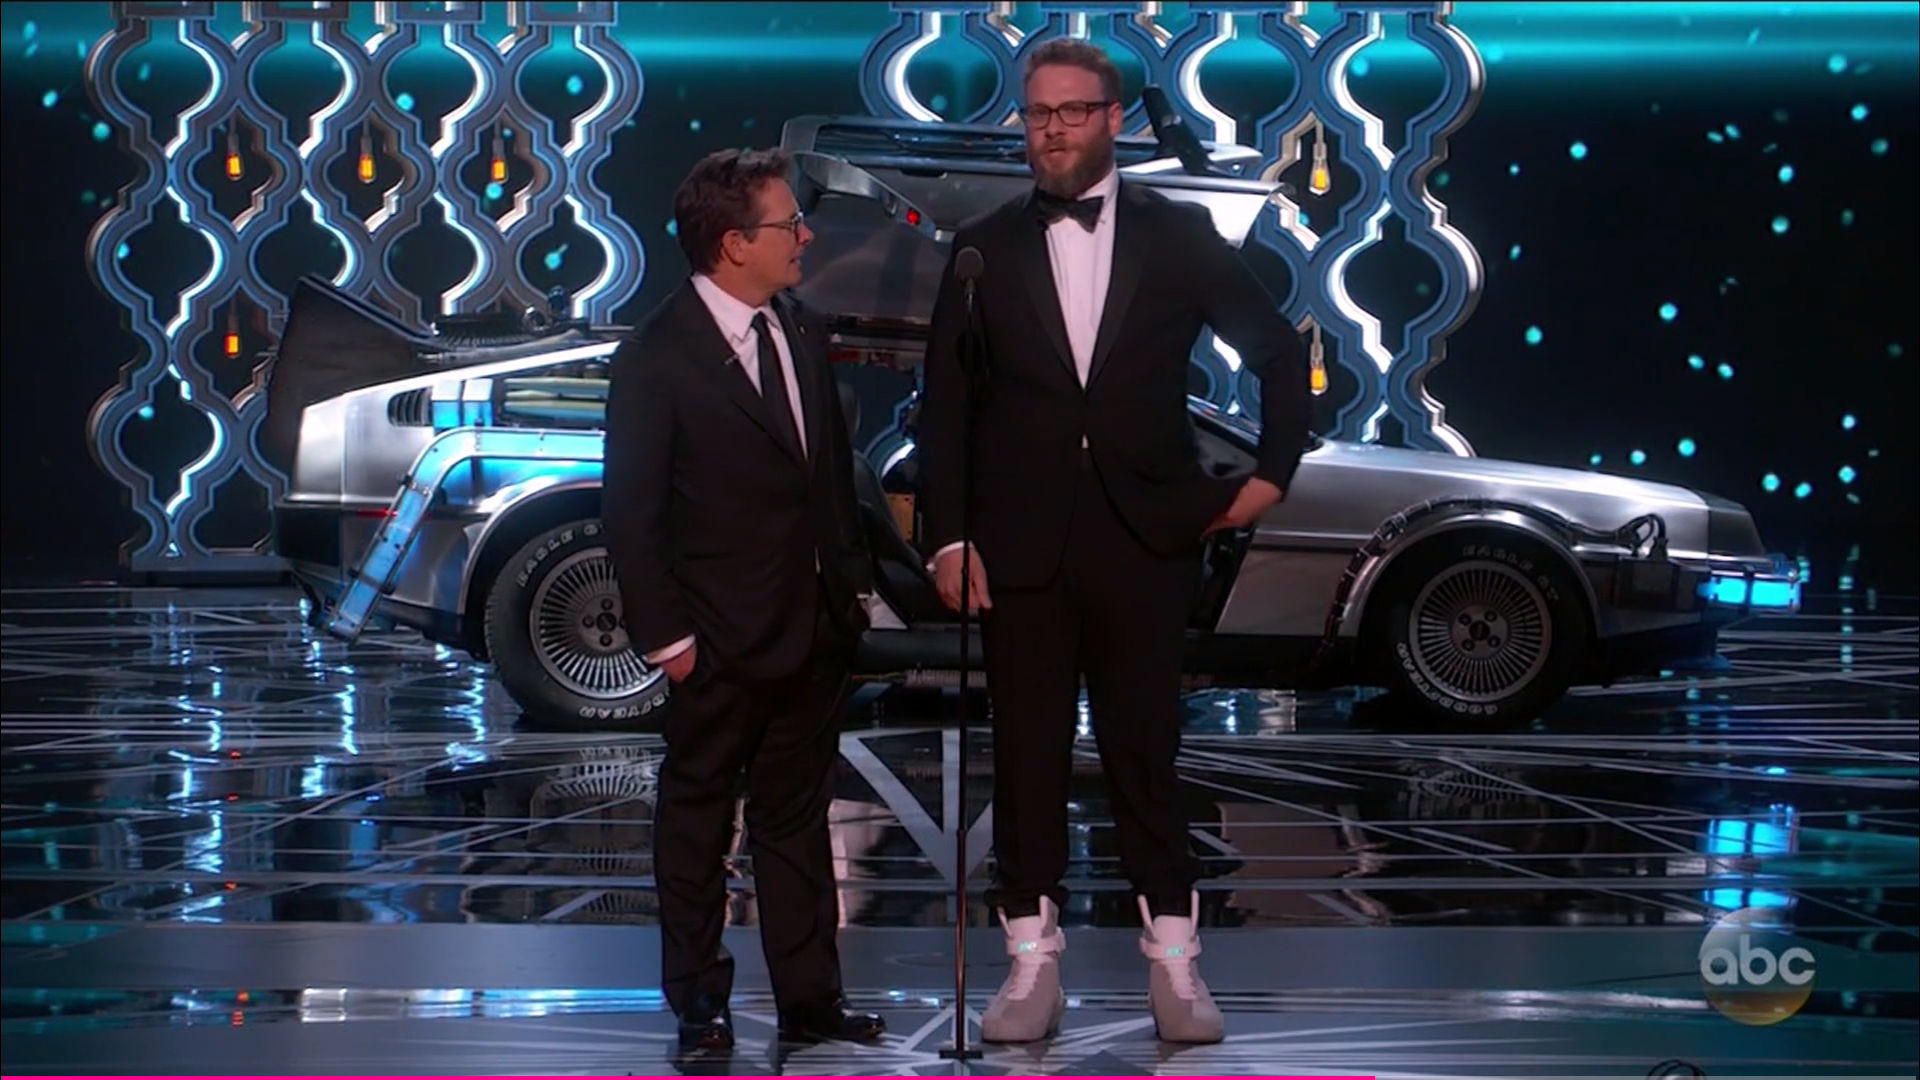 Delorean For Sale >> Back to the Future DeLorean appears on stage at Oscars